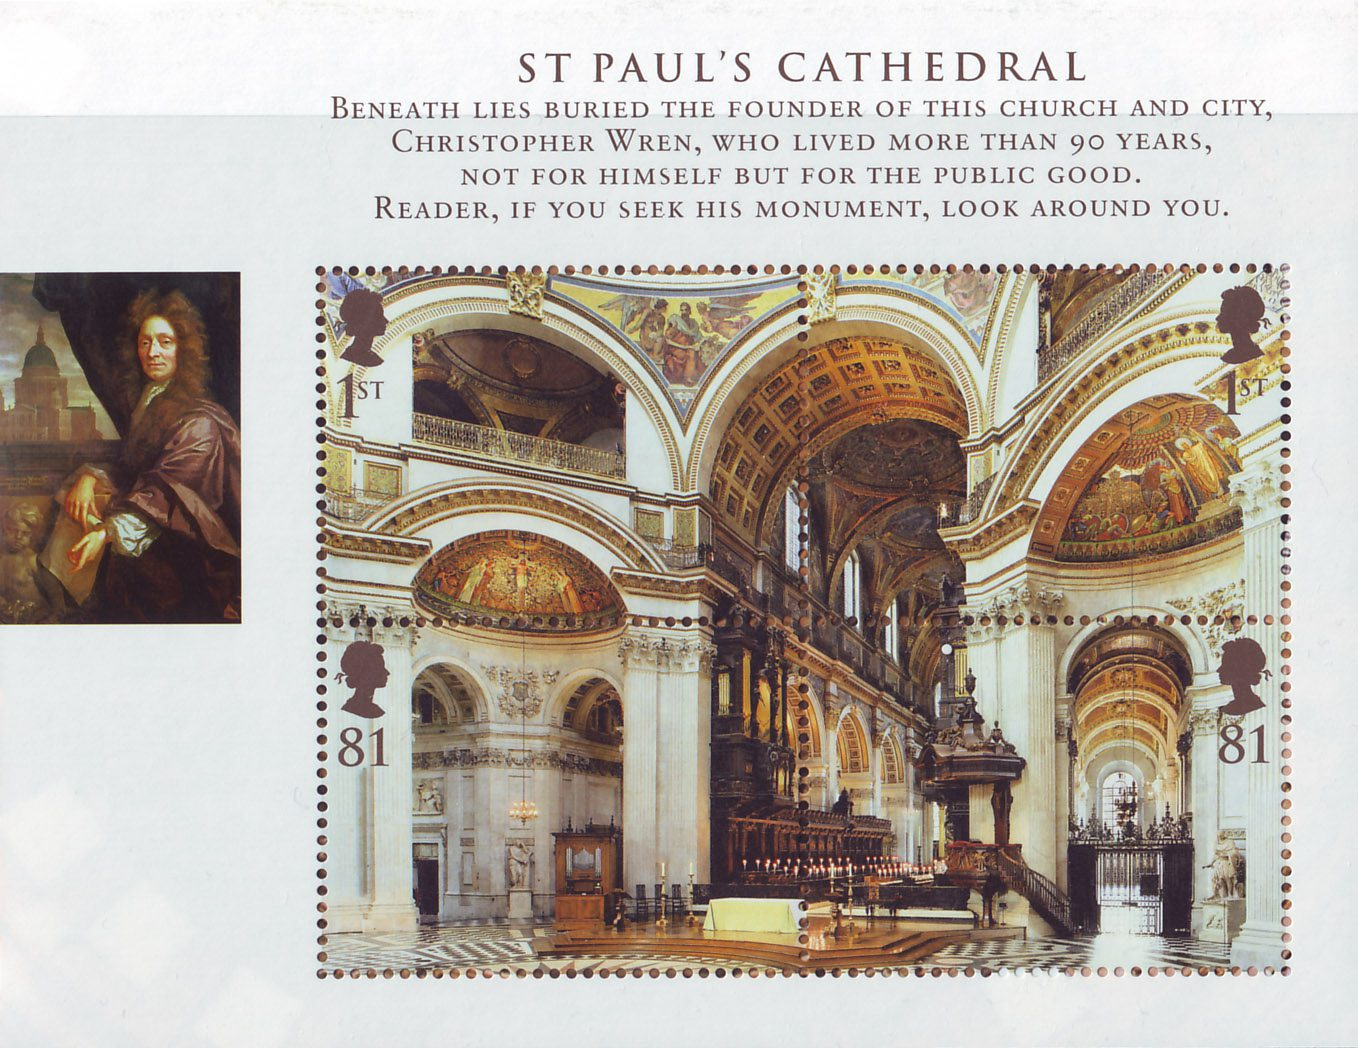 A Miniature Sheet consisting of four stamps that make up a unified image of the inside of St Paul's Cathedral.